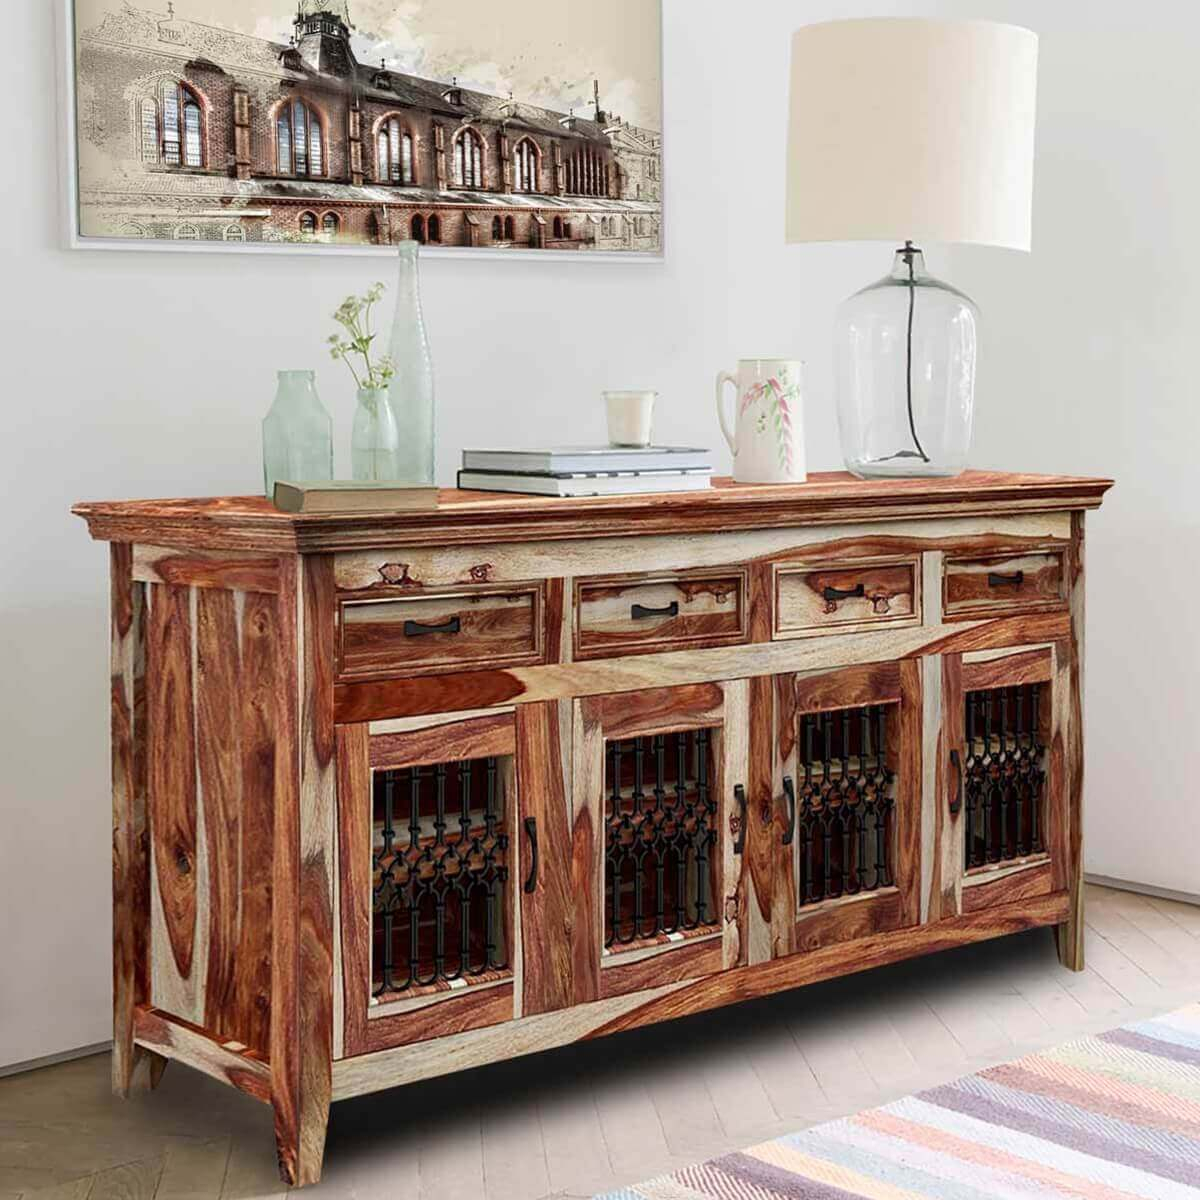 Peoria Modern Rustic Solid Wood 4 Door 4 Drawer Large Buffet Cabinet For Solid Wood Contemporary Sideboards Buffets (View 15 of 30)